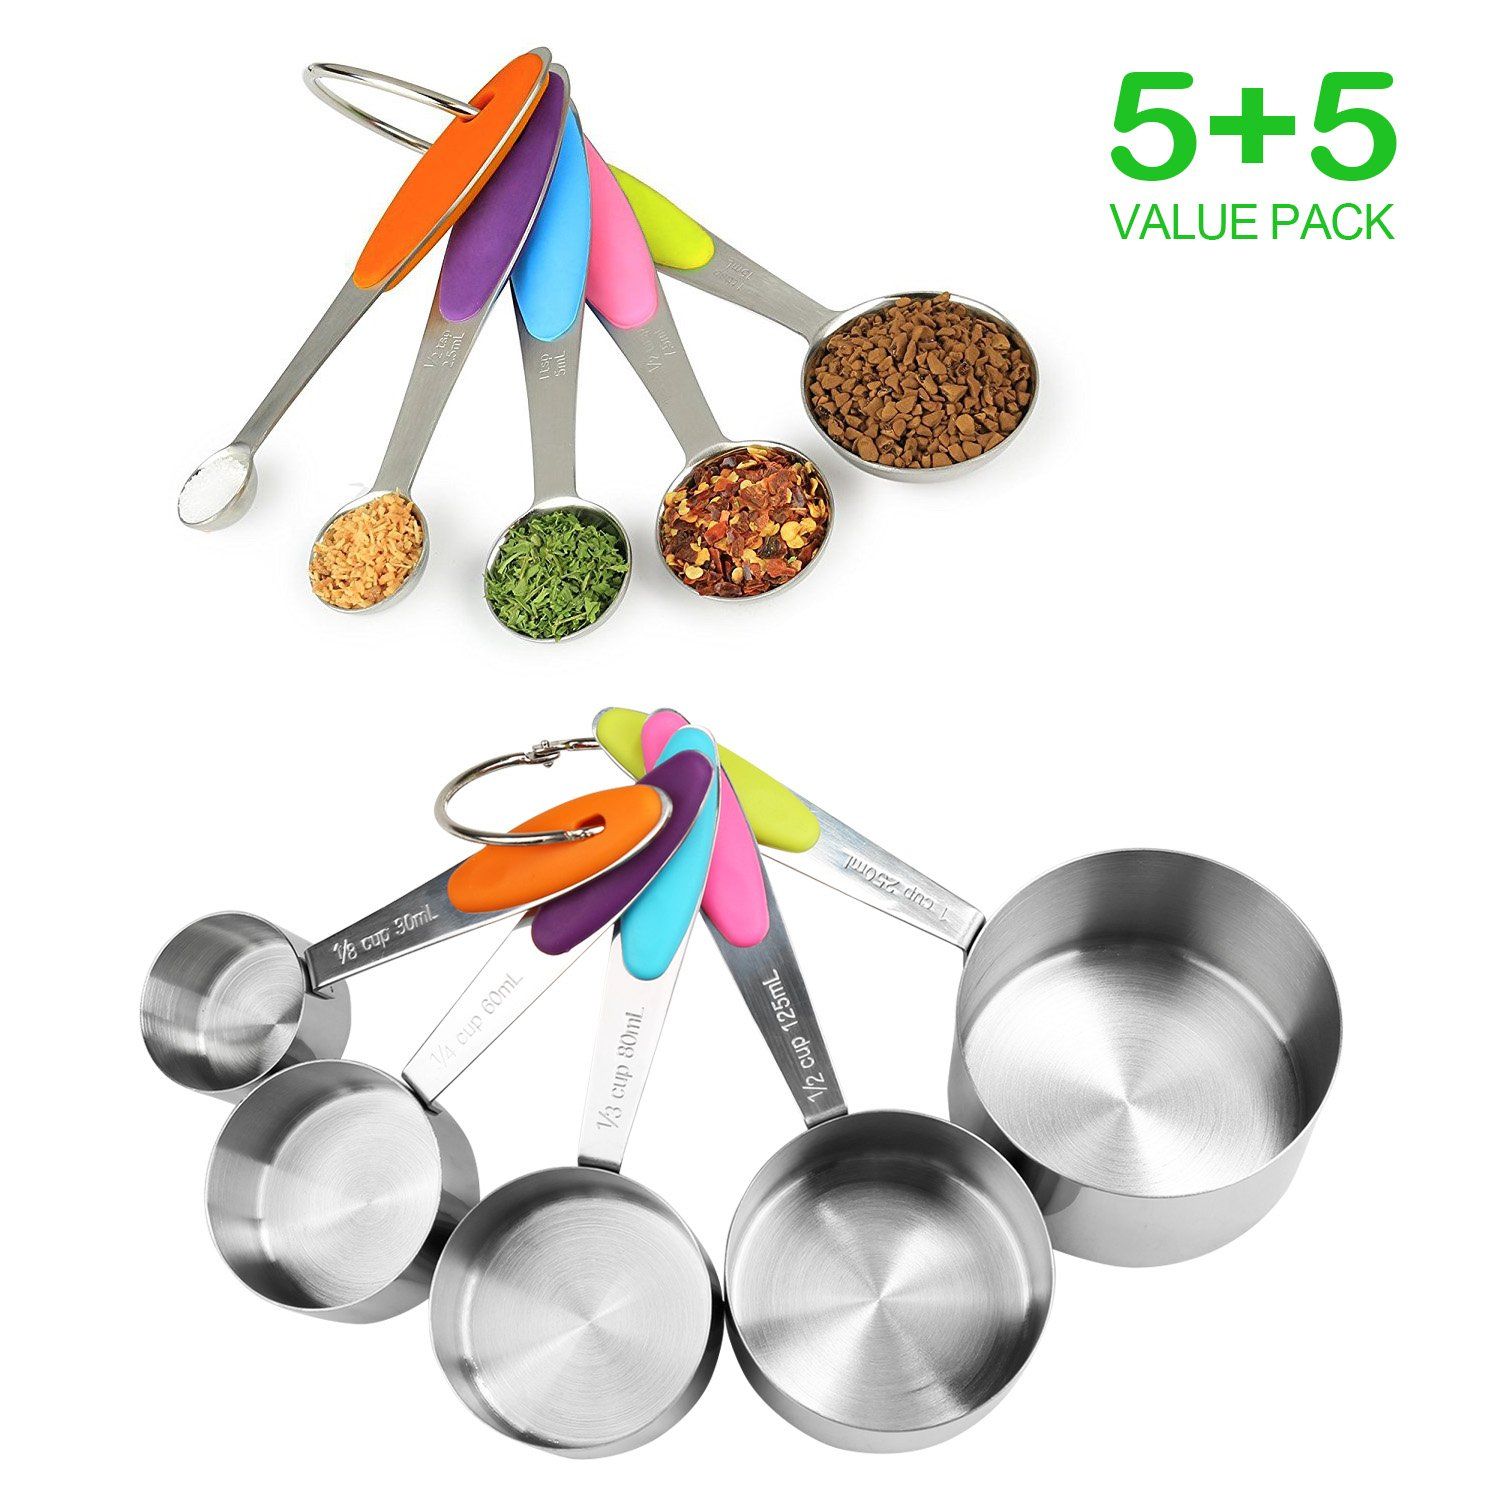 LEADSTAR Measuring Cups and Spoons Set 10 Piece, Professional Stainless Steel Kitchen Cooking Baking Measuring Cups Measuring Spoons with Silicone Handle